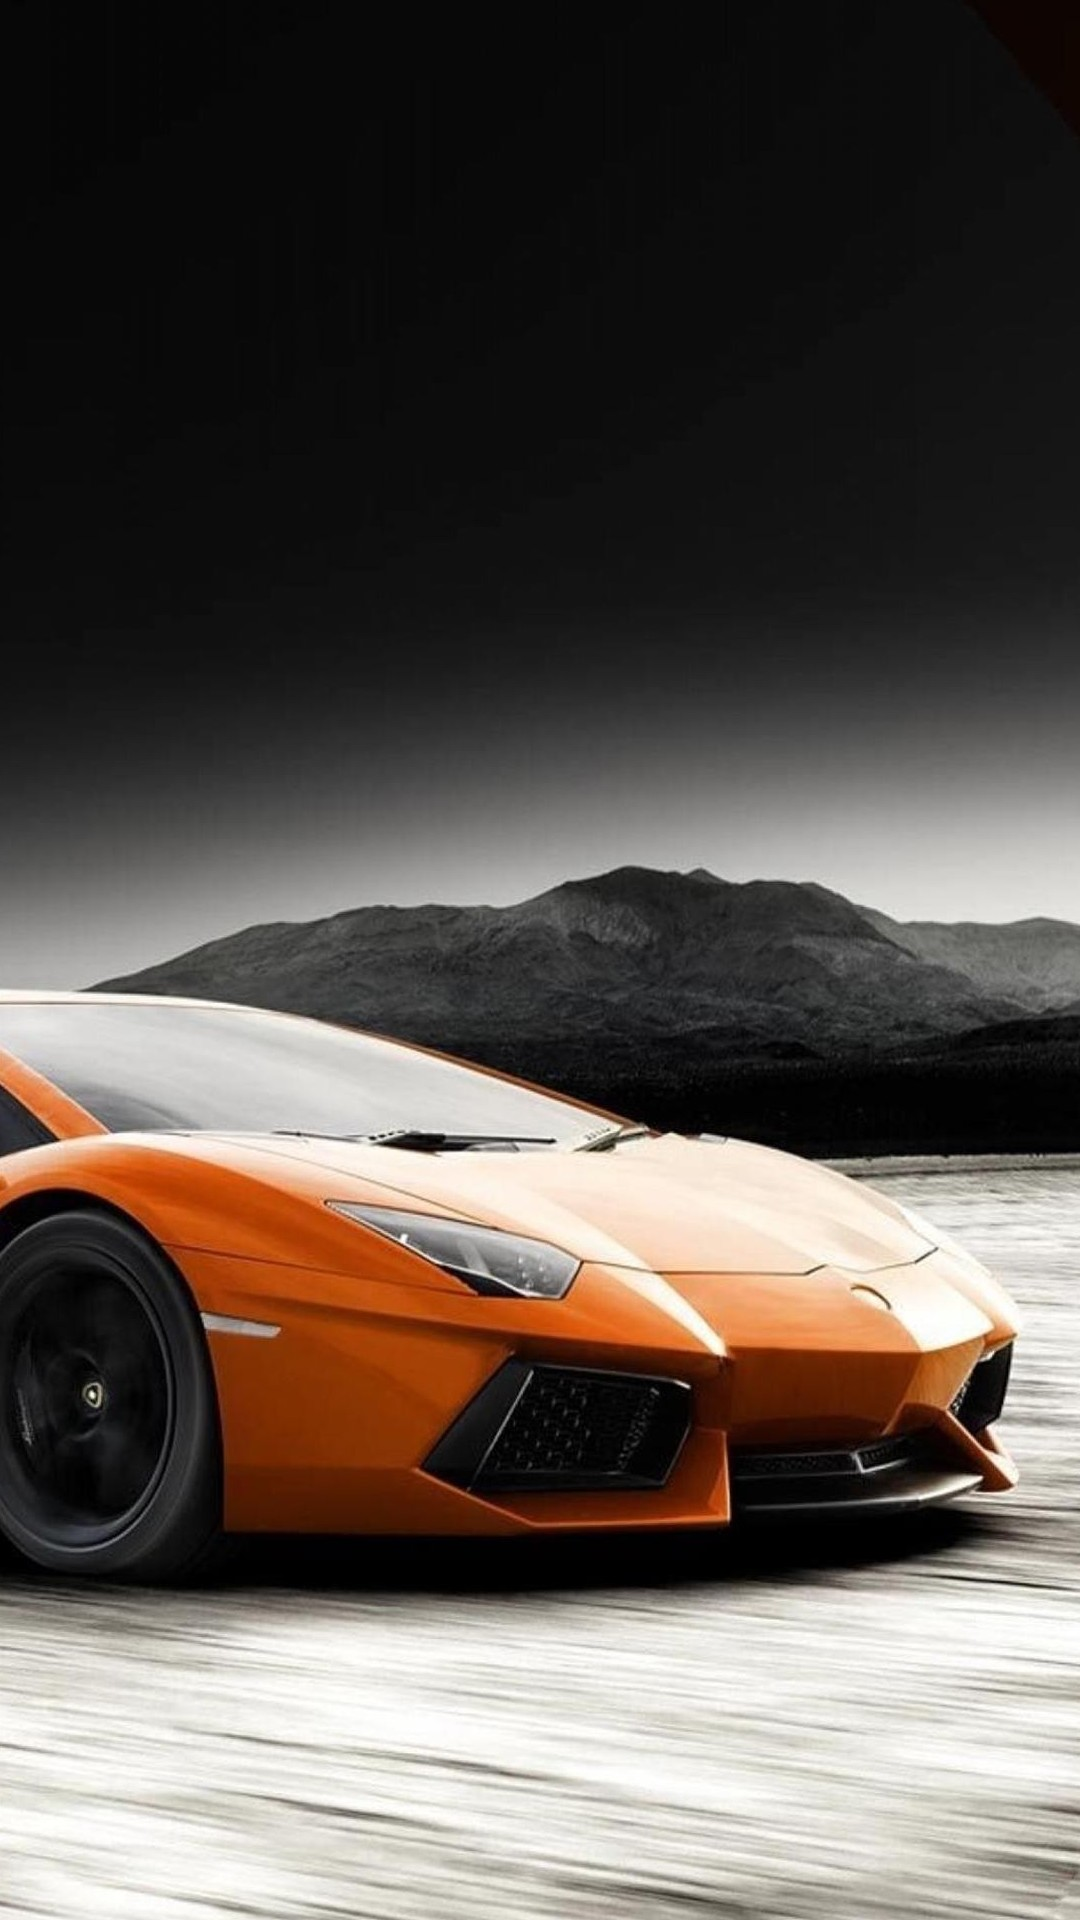 HTC One Max Car Wallpapers 22